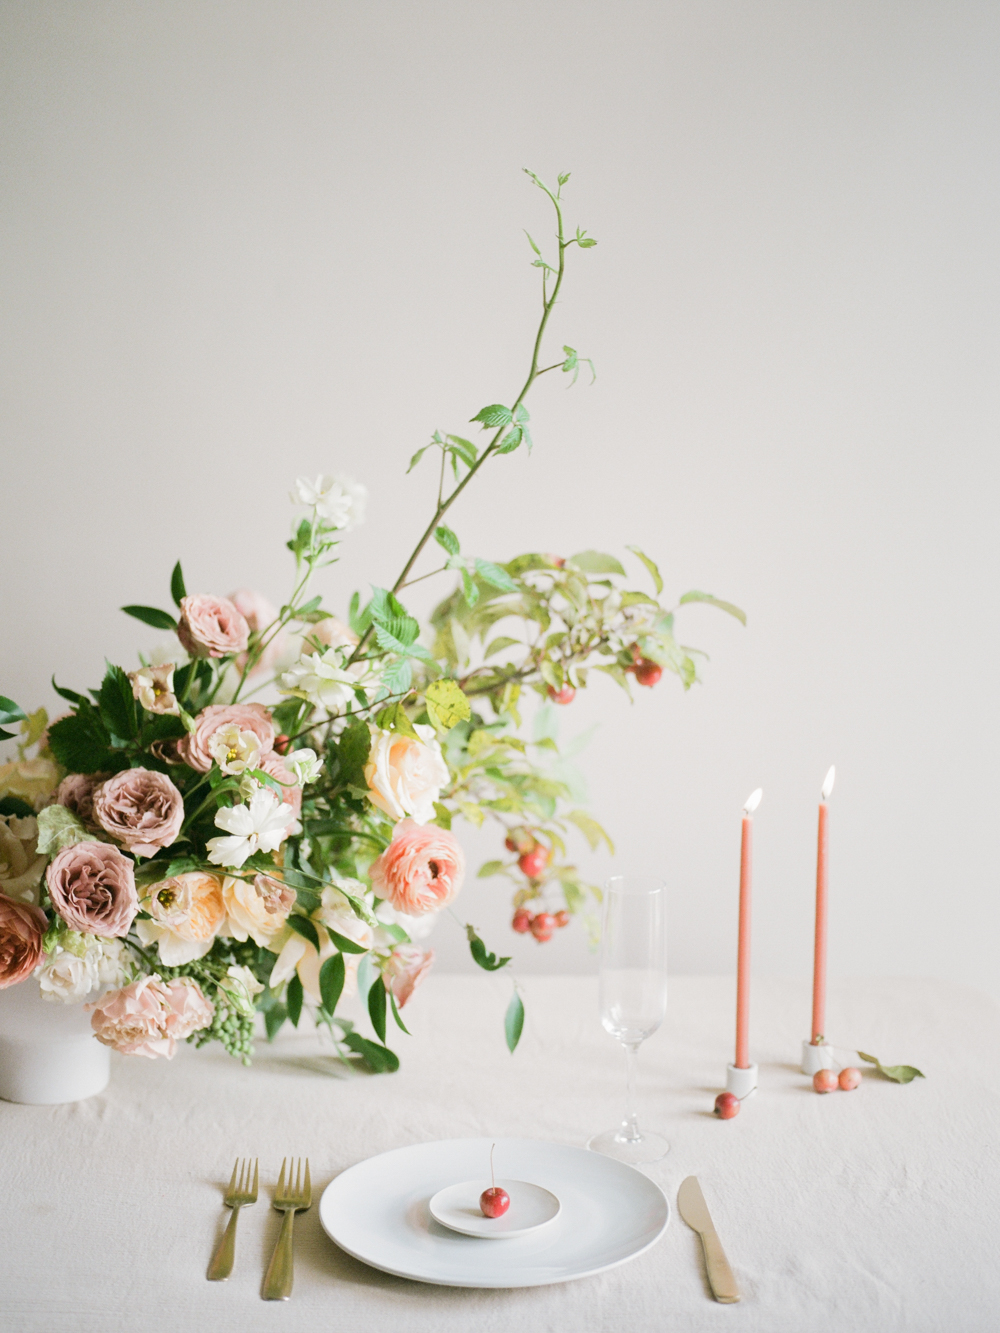 film wedding photographer - Houston wedding photographer - intimate wedding photographer - Christine Gosch - fall wedding inspiration - blush fall wedding - wedding flowers - fall wedding flowers - minimal wedding table inspo - Maxit Flower Design-4.jpg